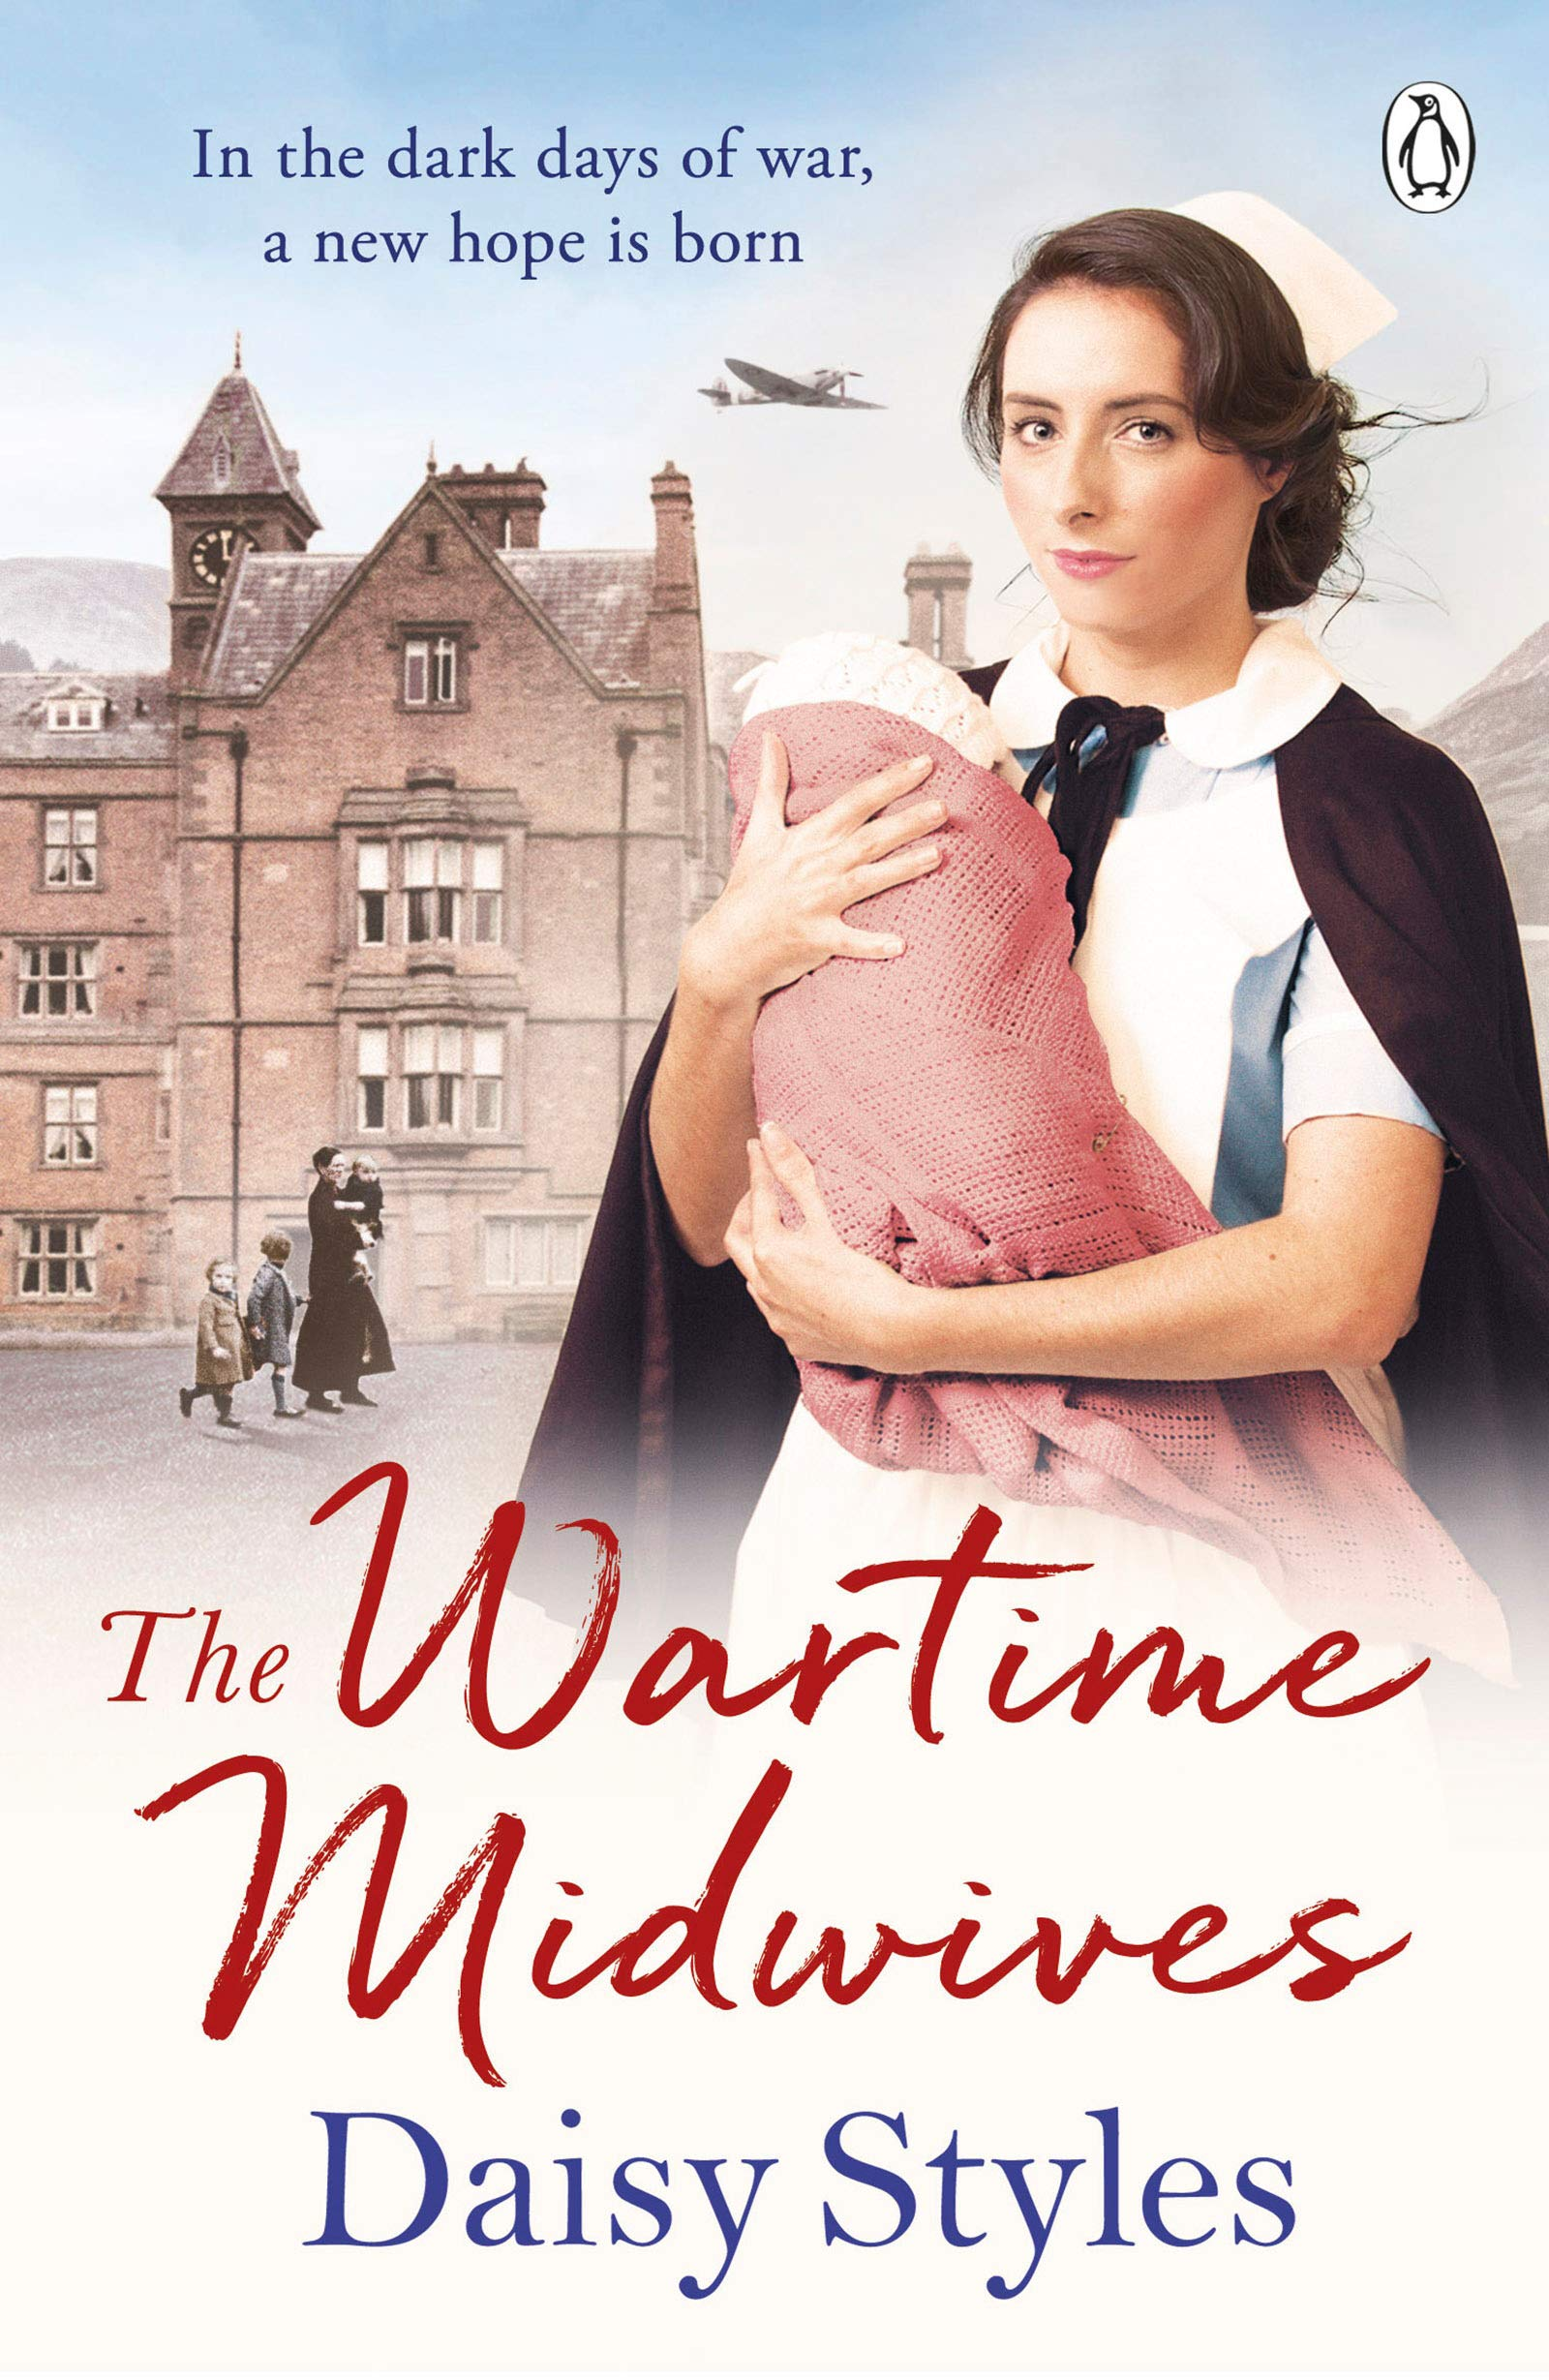 THE WARTIME MIDWIVES  Saga, 400 pages, Penguin, May 2019  Mary Vale, a grand and imposing Mother and Baby Home, sits on the edge of the Lake District. Its doors are open to unmarried women who come to hide their condition and find sanctuary.  Women from all walks of life pass through Mary Vale, from beautiful waitress Emily, whose boyfriend has vanished without trace, to young Isla, cast out by her wealthy family after her first year at university goes horribly wrong.  Awaiting them is Nurse Ada and Sister Anne who work tirelessly to aid the mothers and safely deliver the babies. But the unforgiving Matron and Head of Governors, Captain Percival, have other, more sinister, ideas.  As war looms the women at Mary Vale must pull together for the sake of themselves and their babies and Ada and Anne must help protect their patients, no matter what the cost.